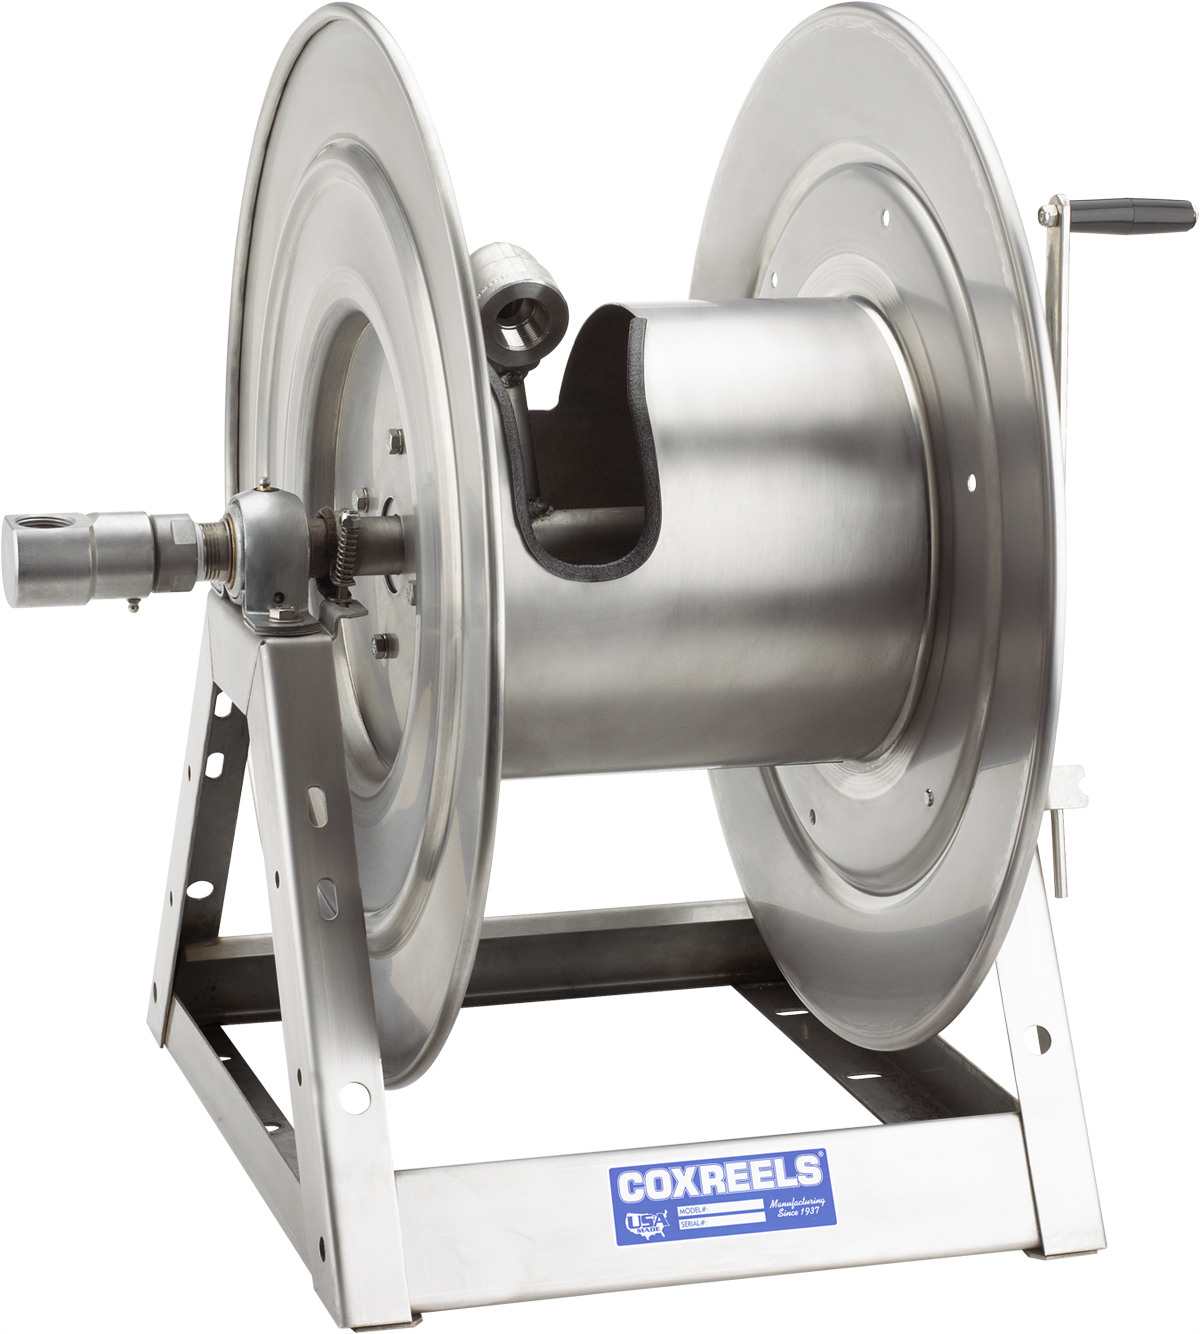 COXREELS 1175-6-100-E-SP Stainless Steel 12V DC Motorized Hose Reel 1inx100ft by Coxreels